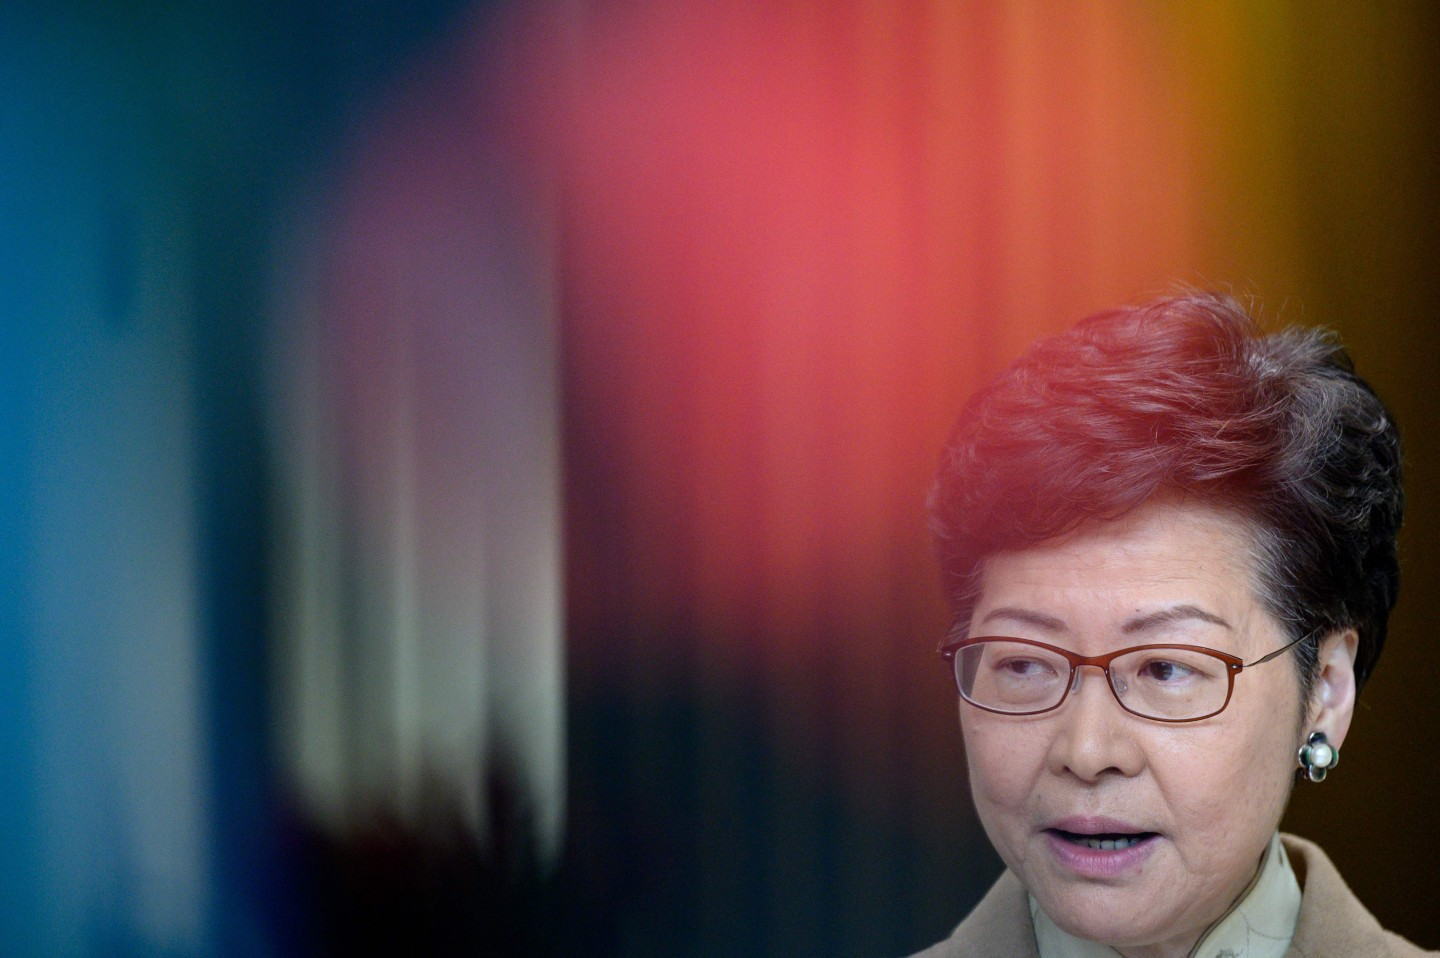 Hong Kong's Chief Executive Carrie Lam speaks during her weekly press conference in Hong Kong on 7 January 2020. (Philip Fong/AFP)